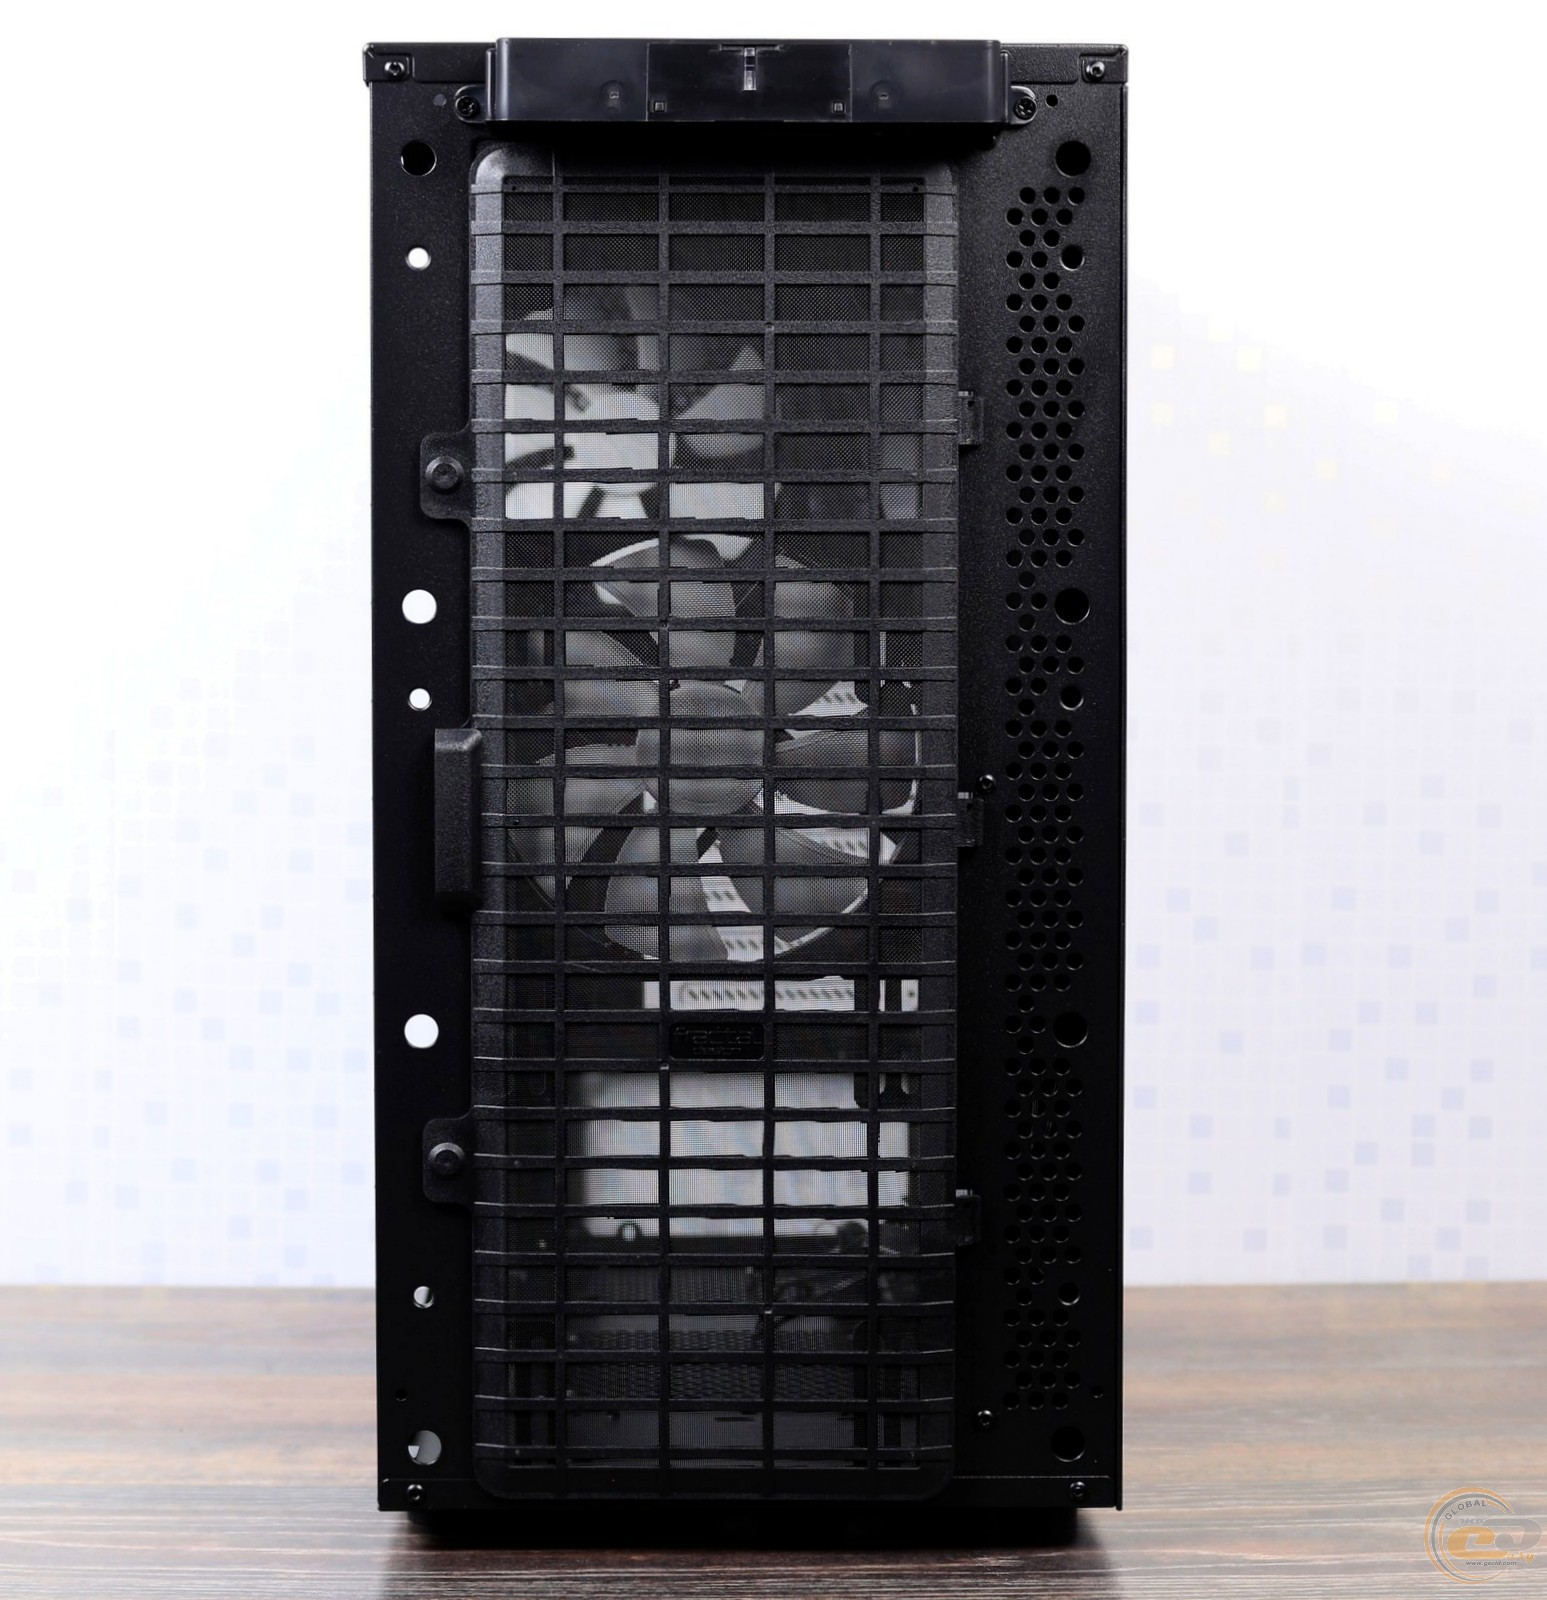 Case fractal design define s window review and testing for Window definition